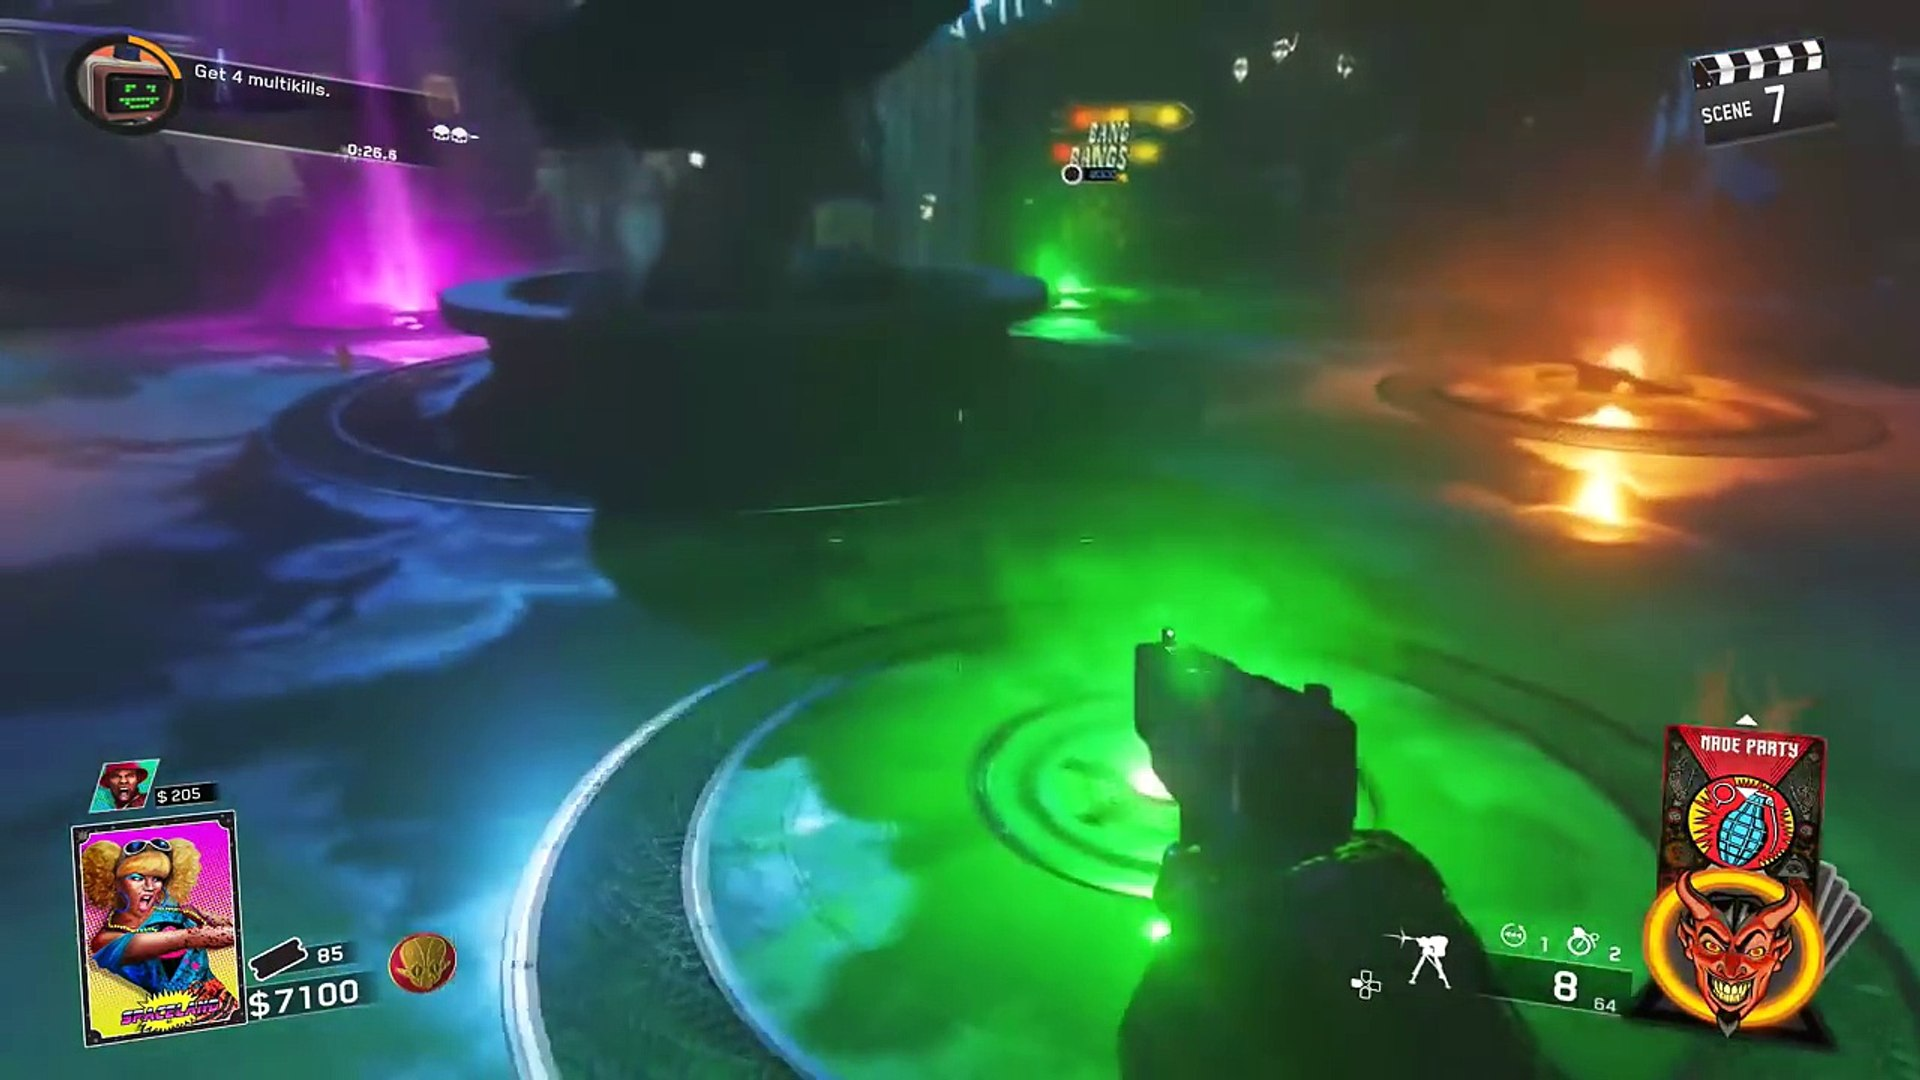 COD Infinite Warfare Glitches: *ALL OF THE BEST* ZOMBIES IN SPACELAND GLITCHES!